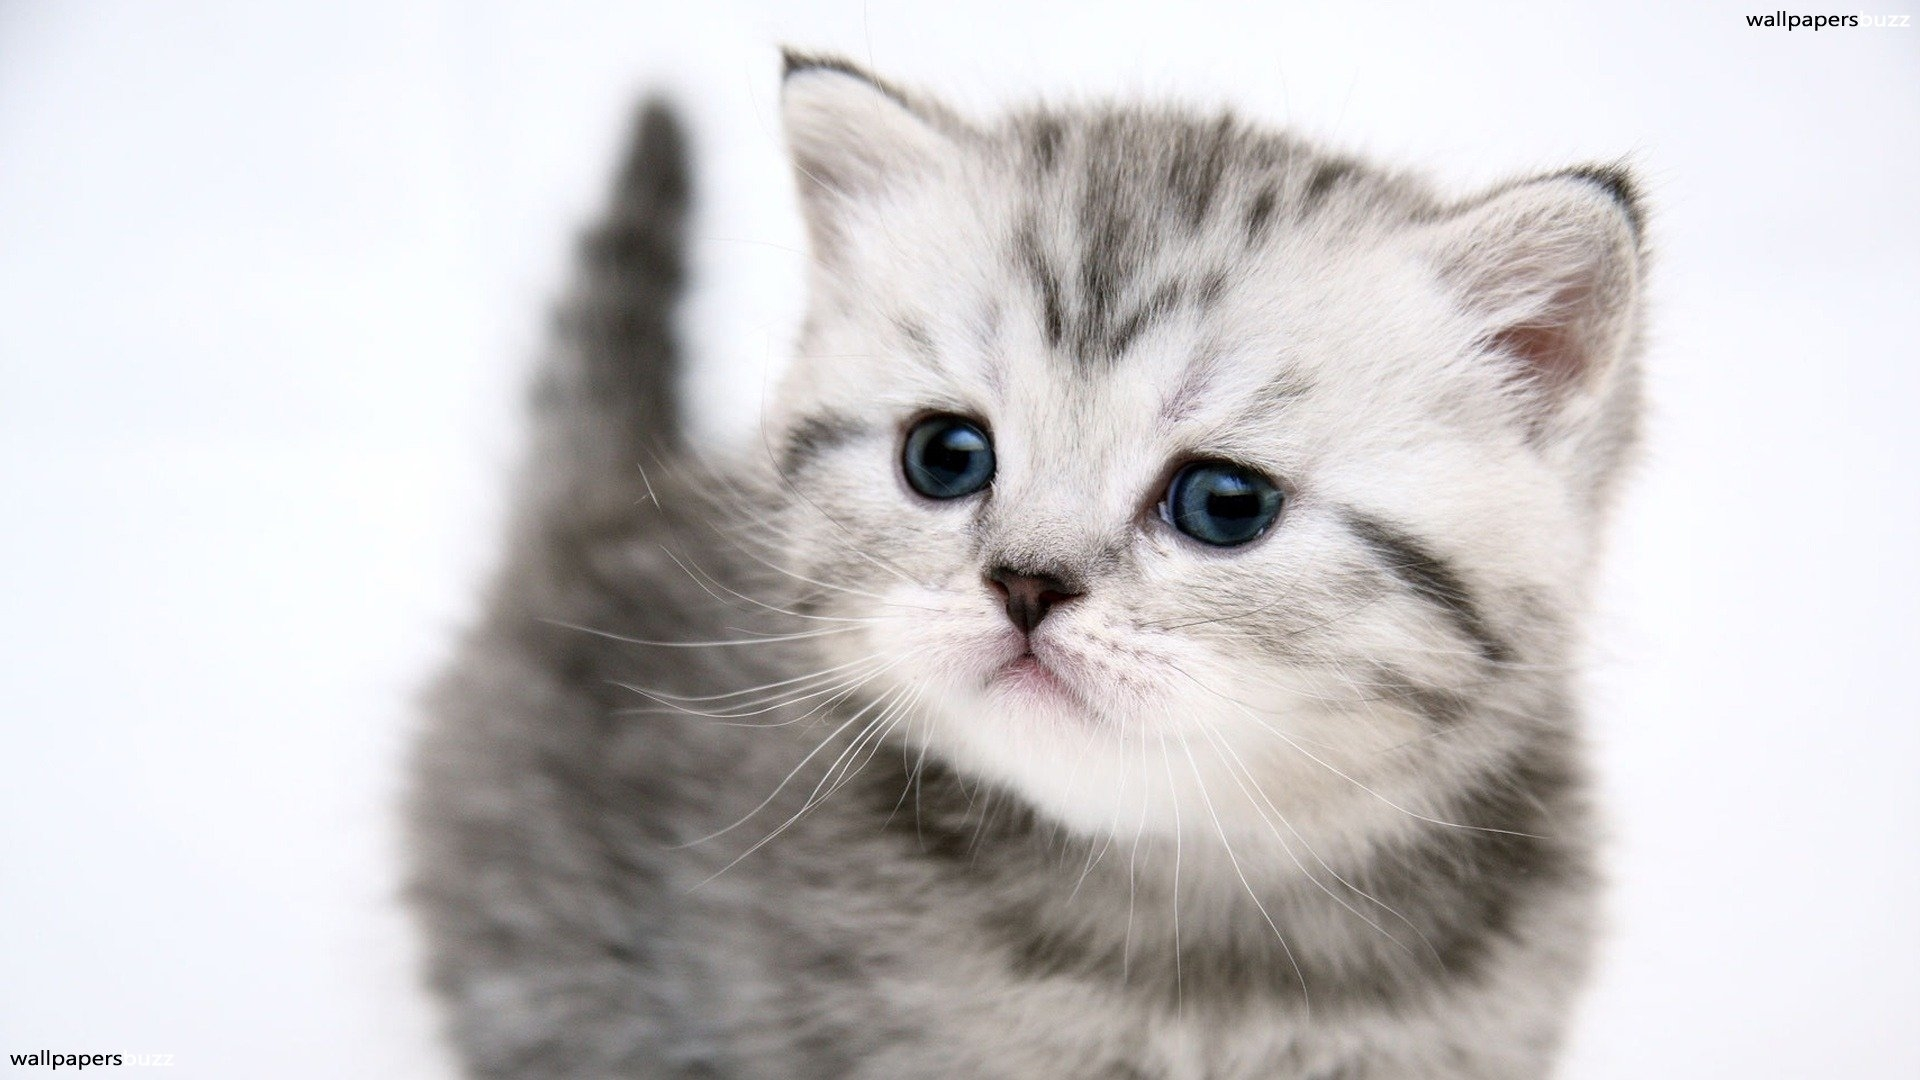 cat wallpapers for iphone